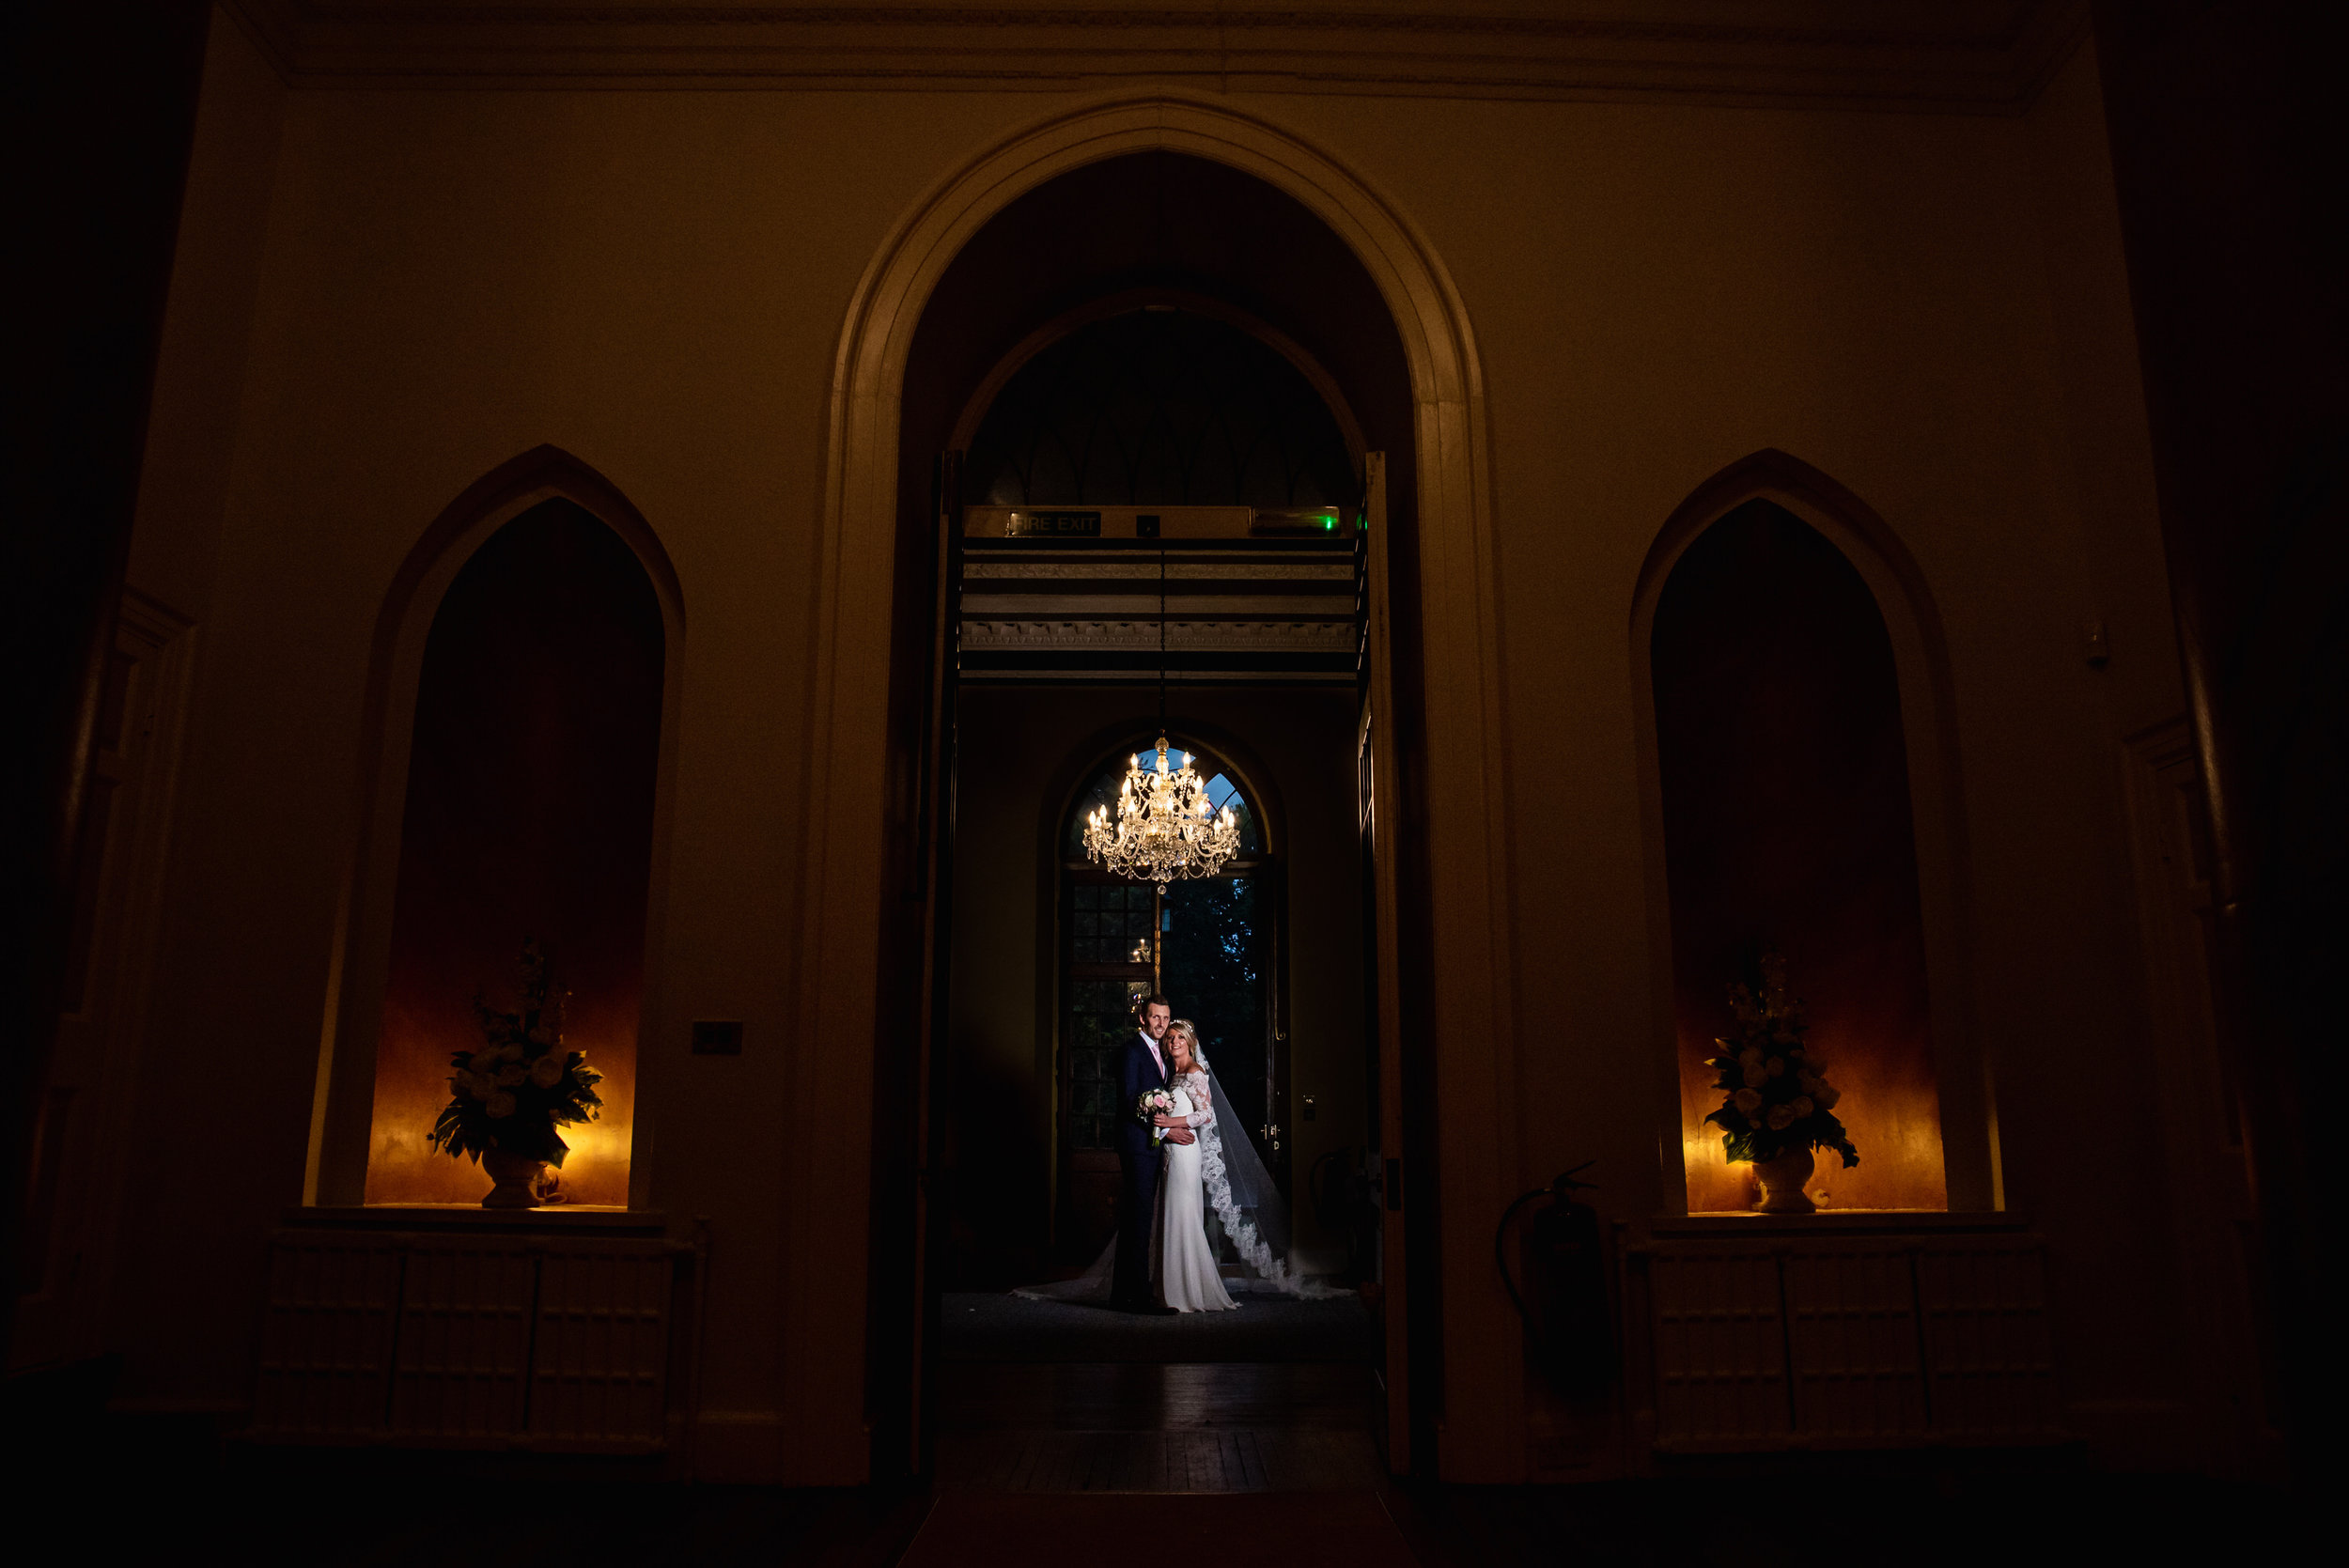 Clearwell-Castle-Gloucestershire-Wedding-Photography-27.jpg